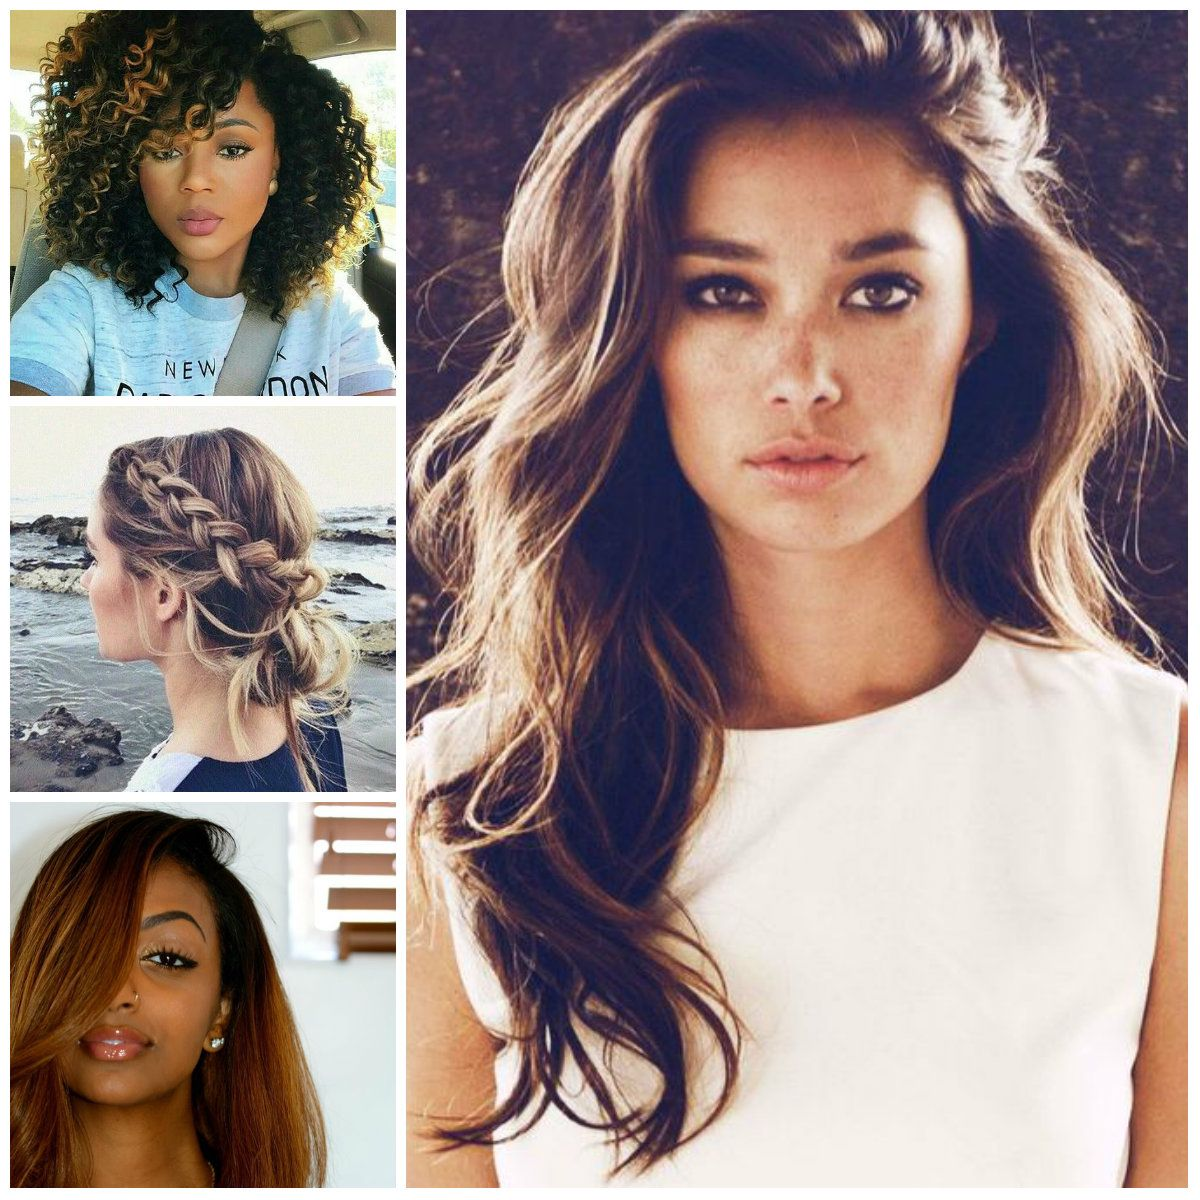 Most Popular Hairstyles on Pinterest for 2017 | Hair | Pinterest ...